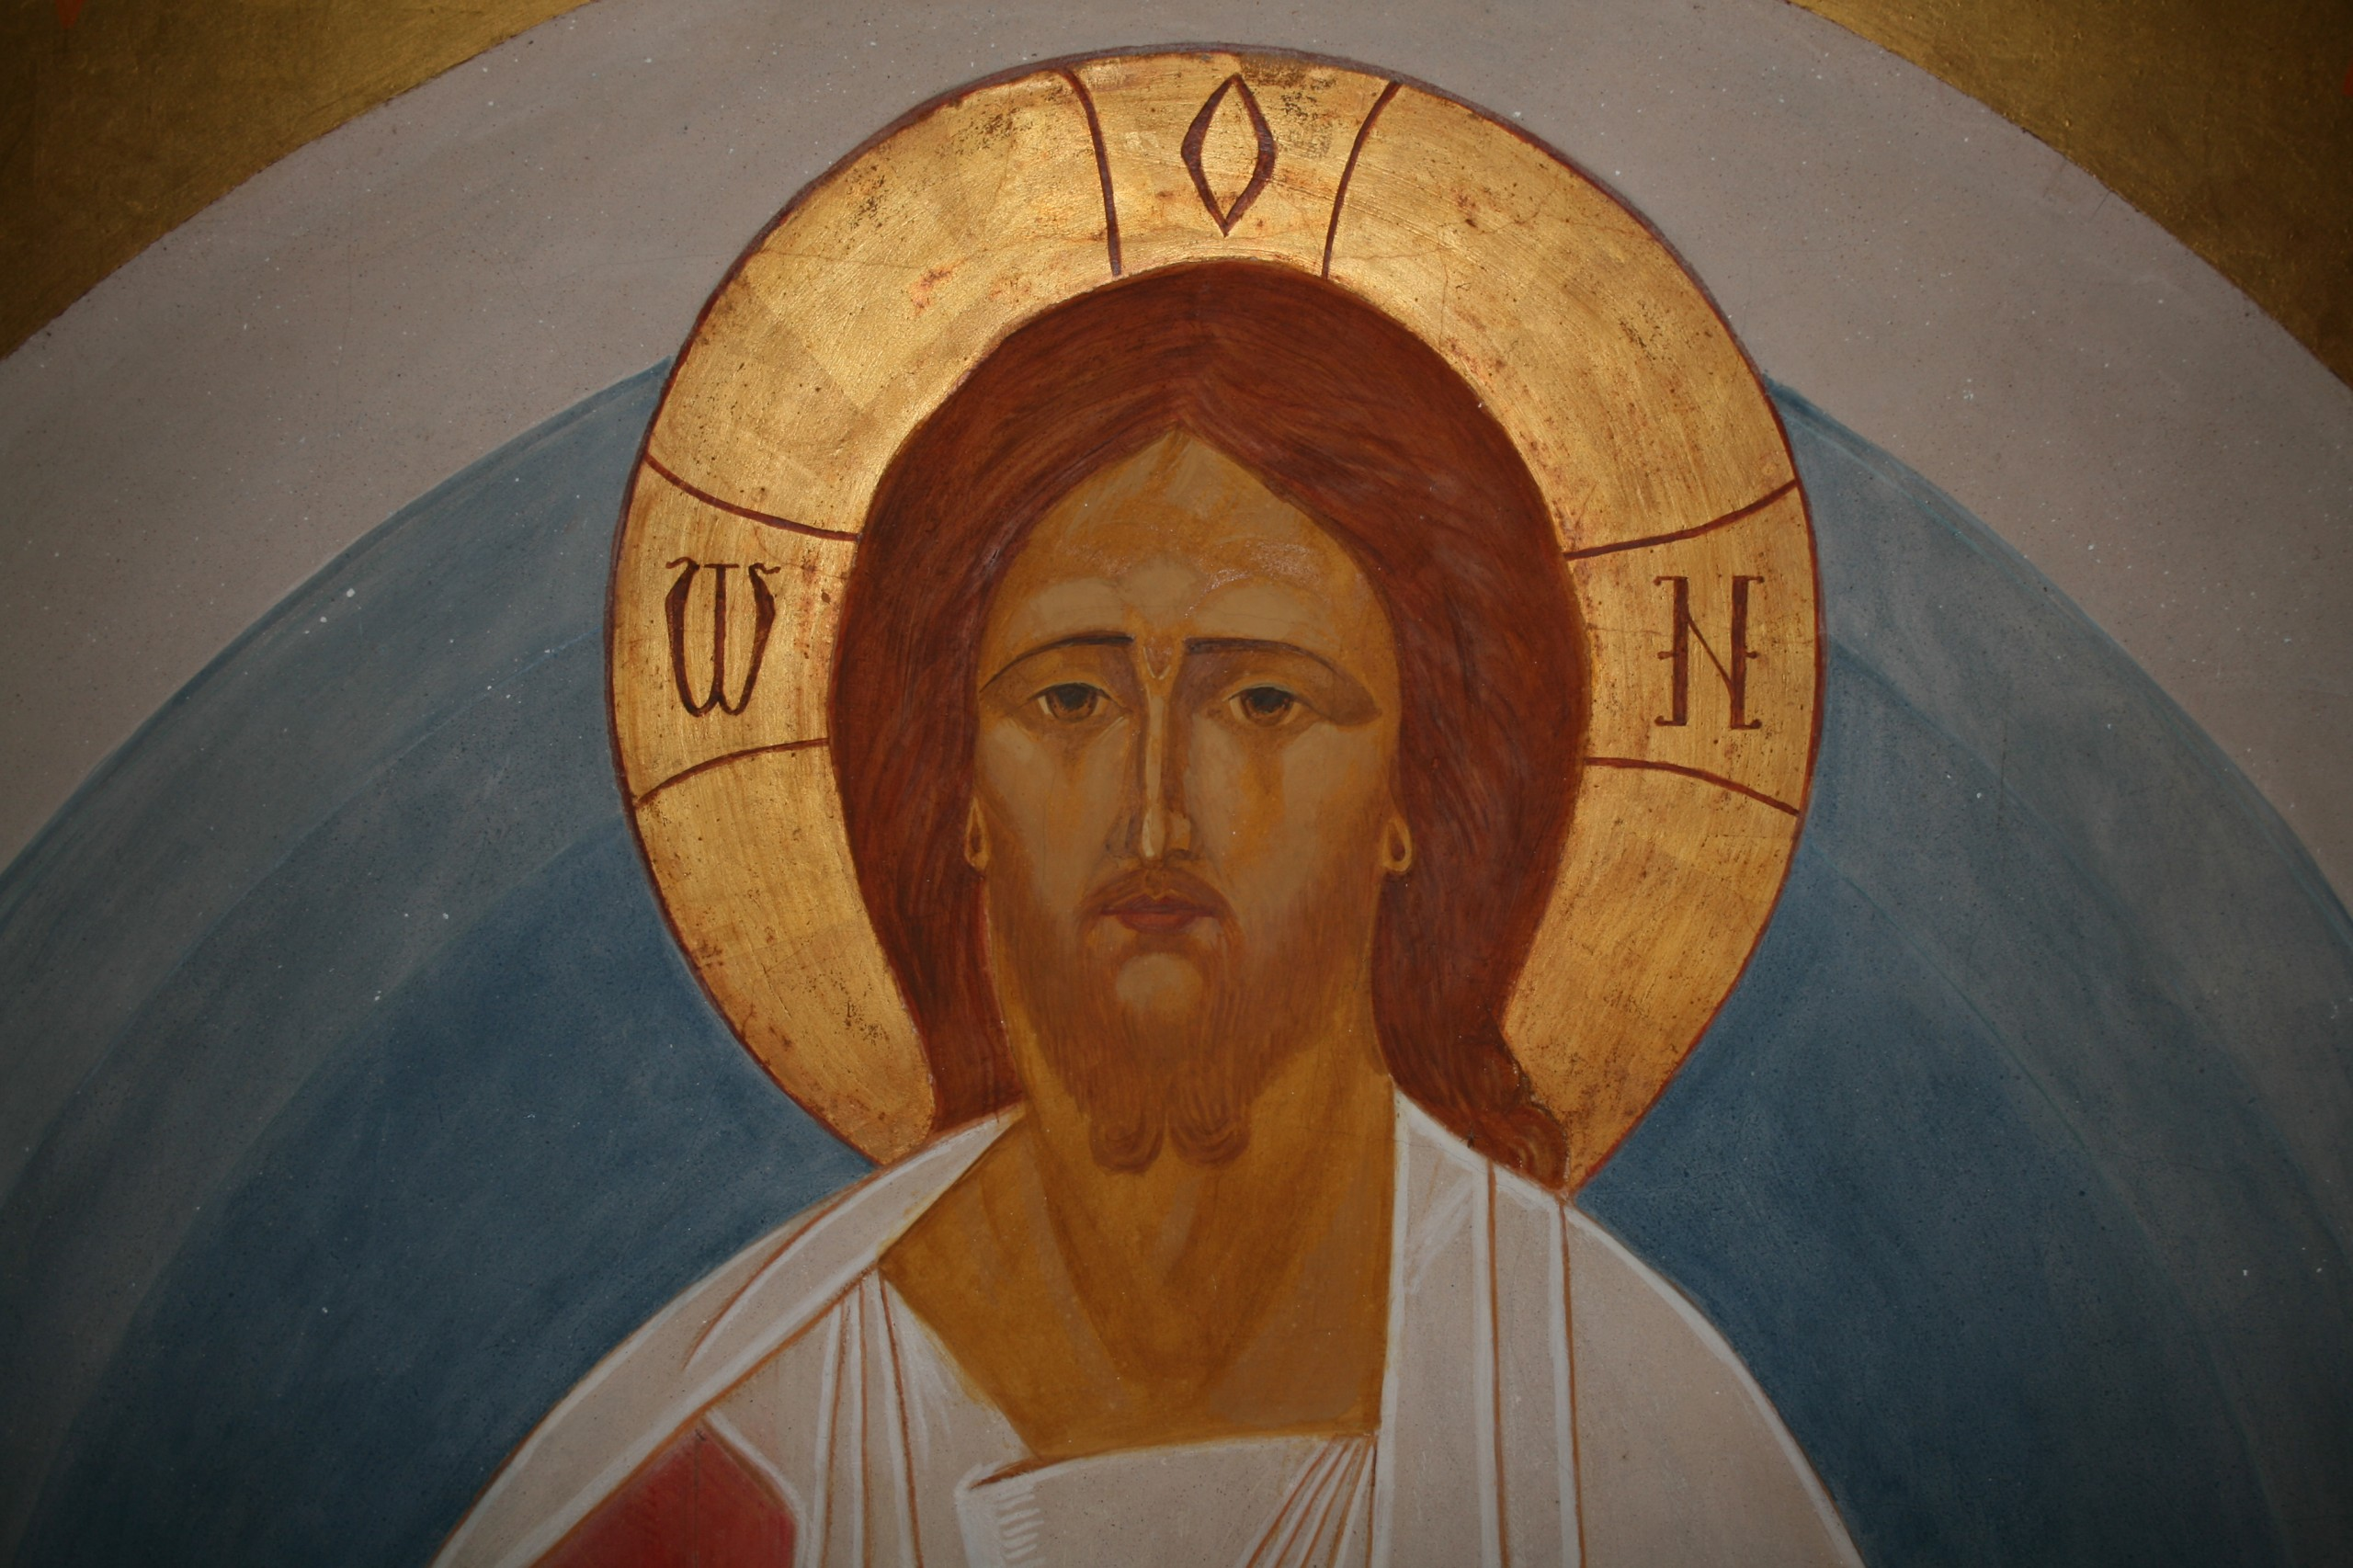 Christ from the Deisis, Refectory